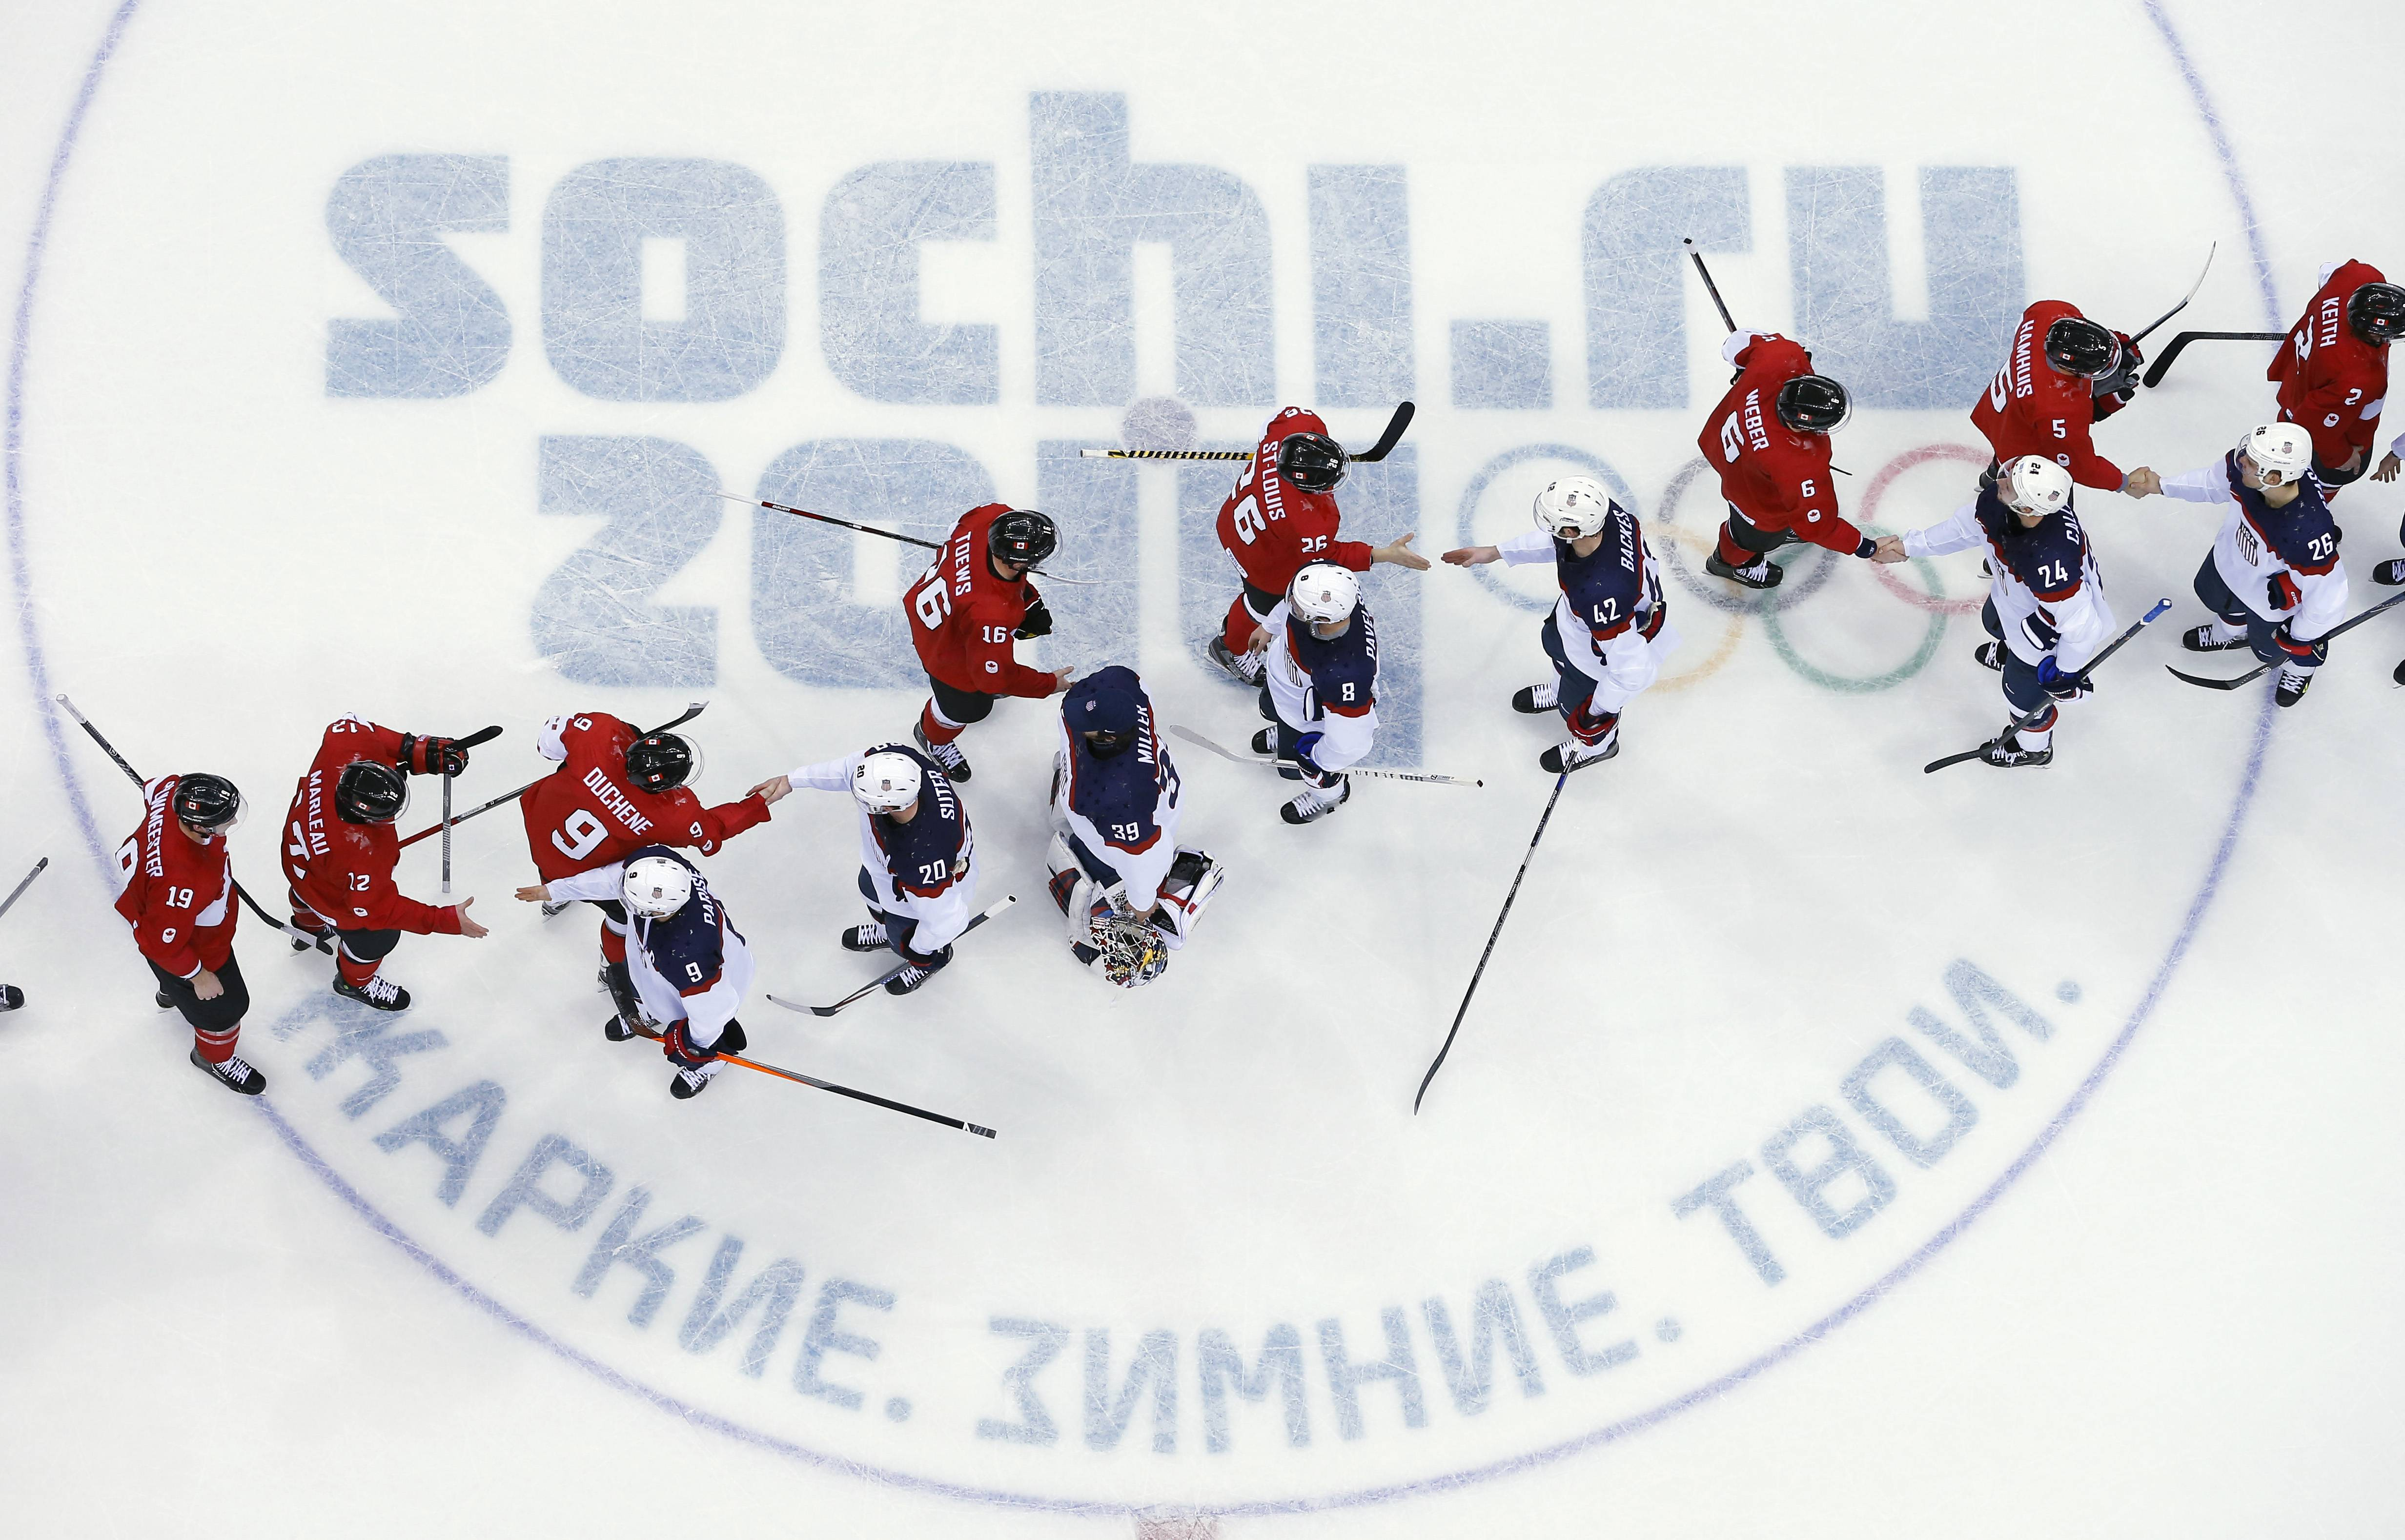 USA and Canada players shake hands after a men's semifinal ice hockey game.